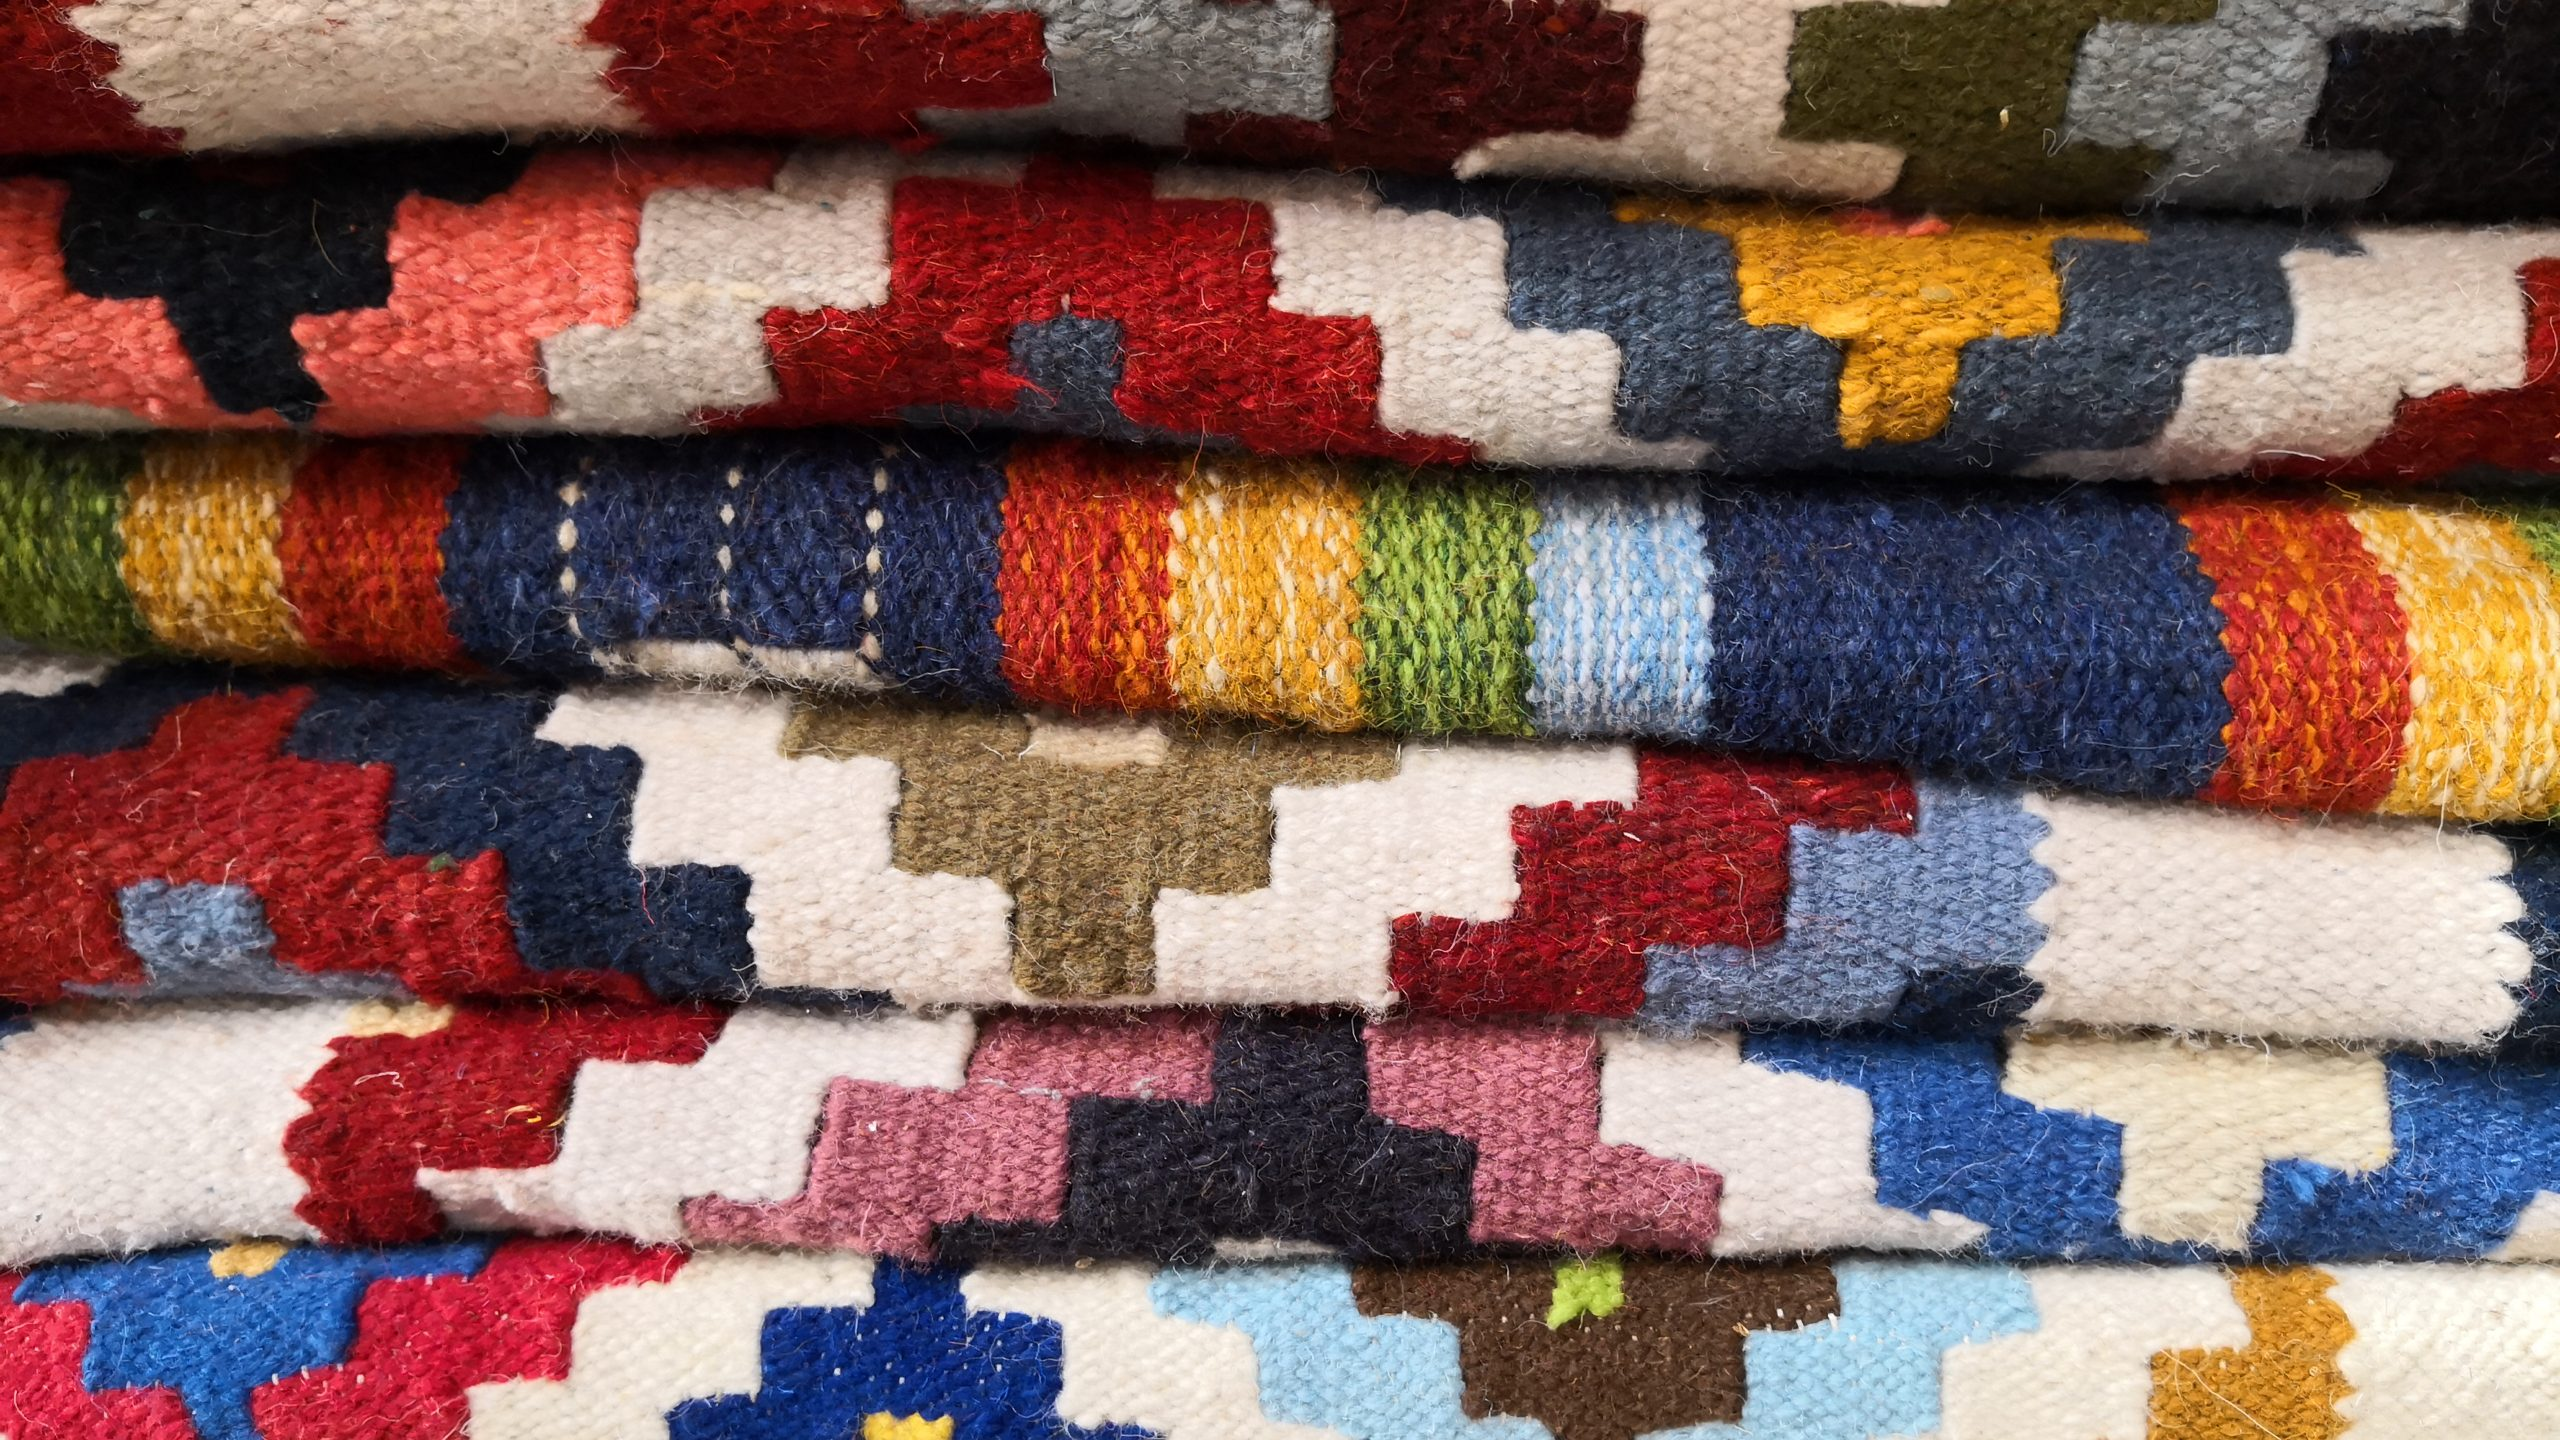 Colorful Rugs and Carpets